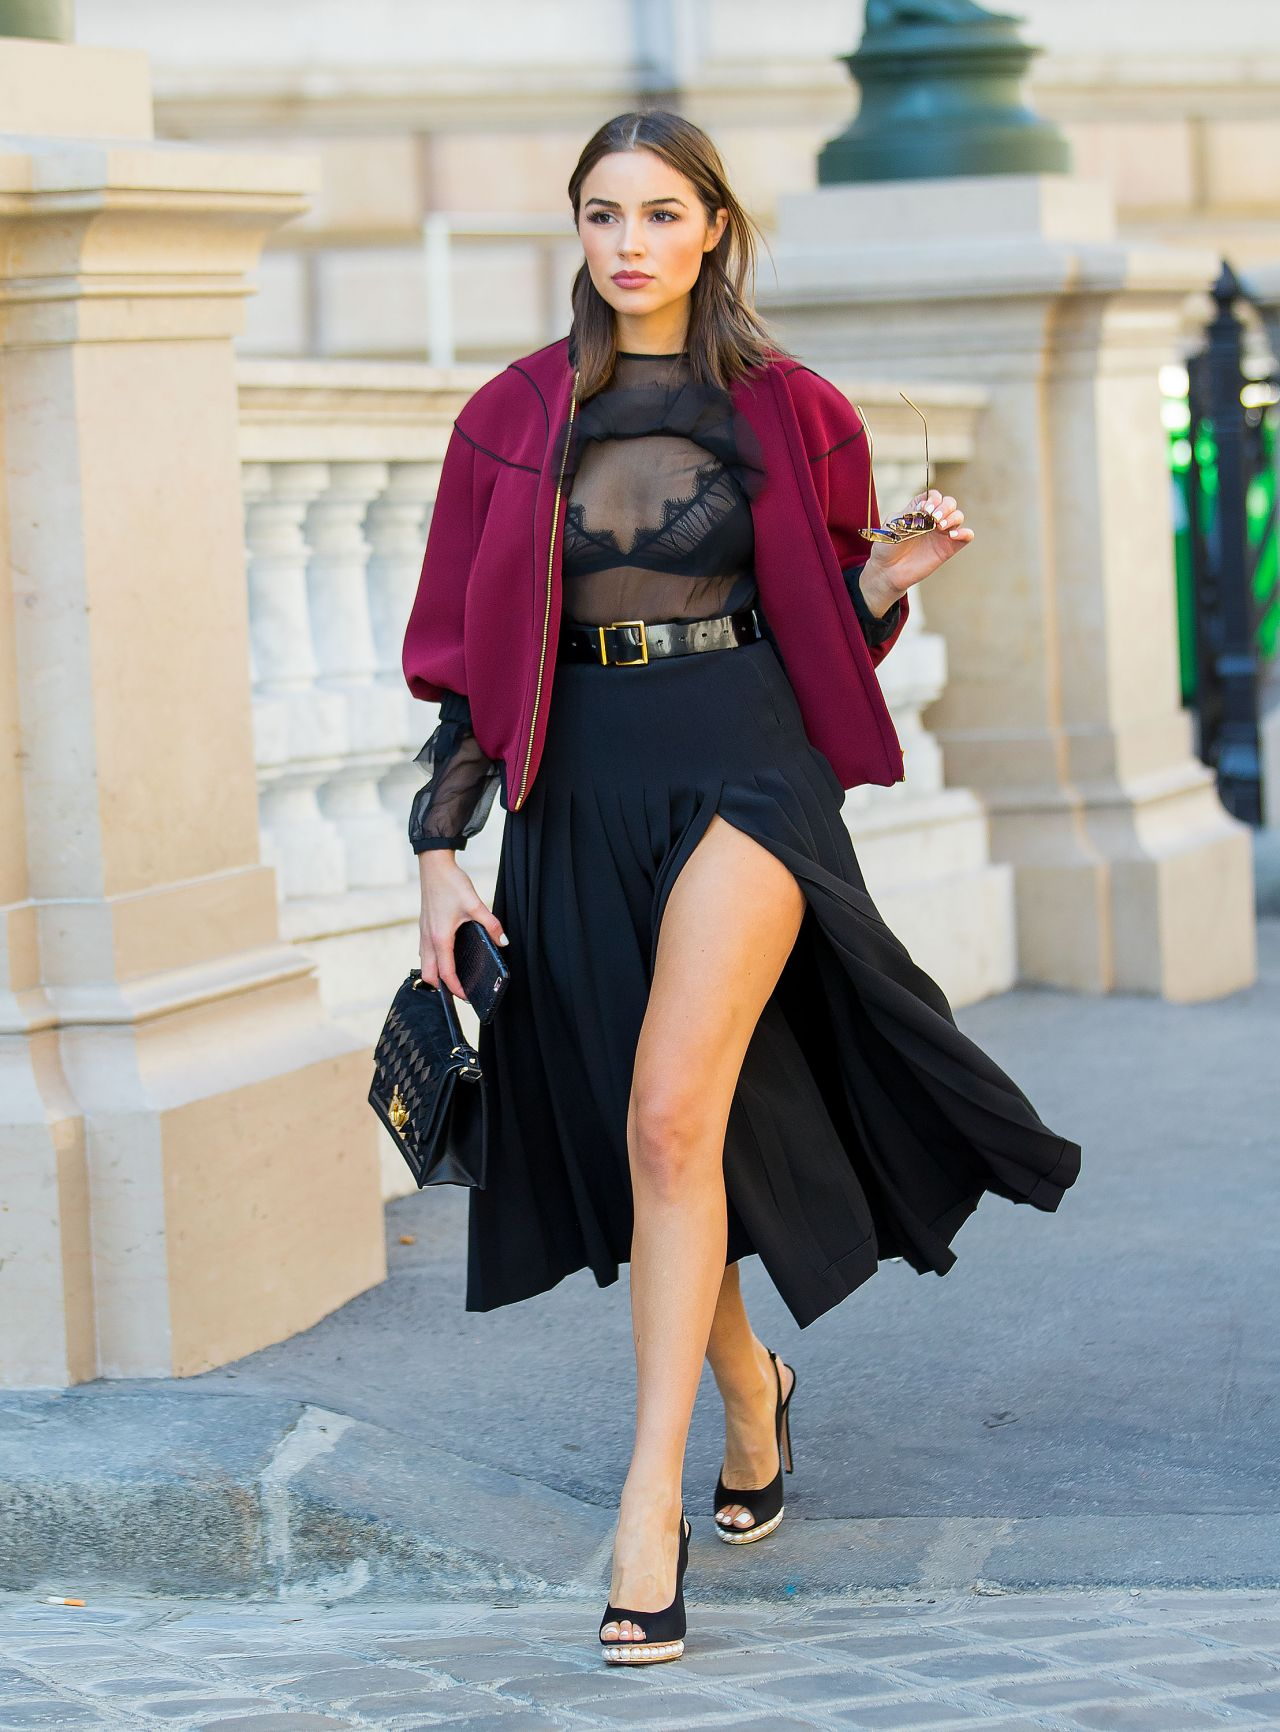 Olivia Culpo Is Looking All Stylish Out In Paris 10 7 2016